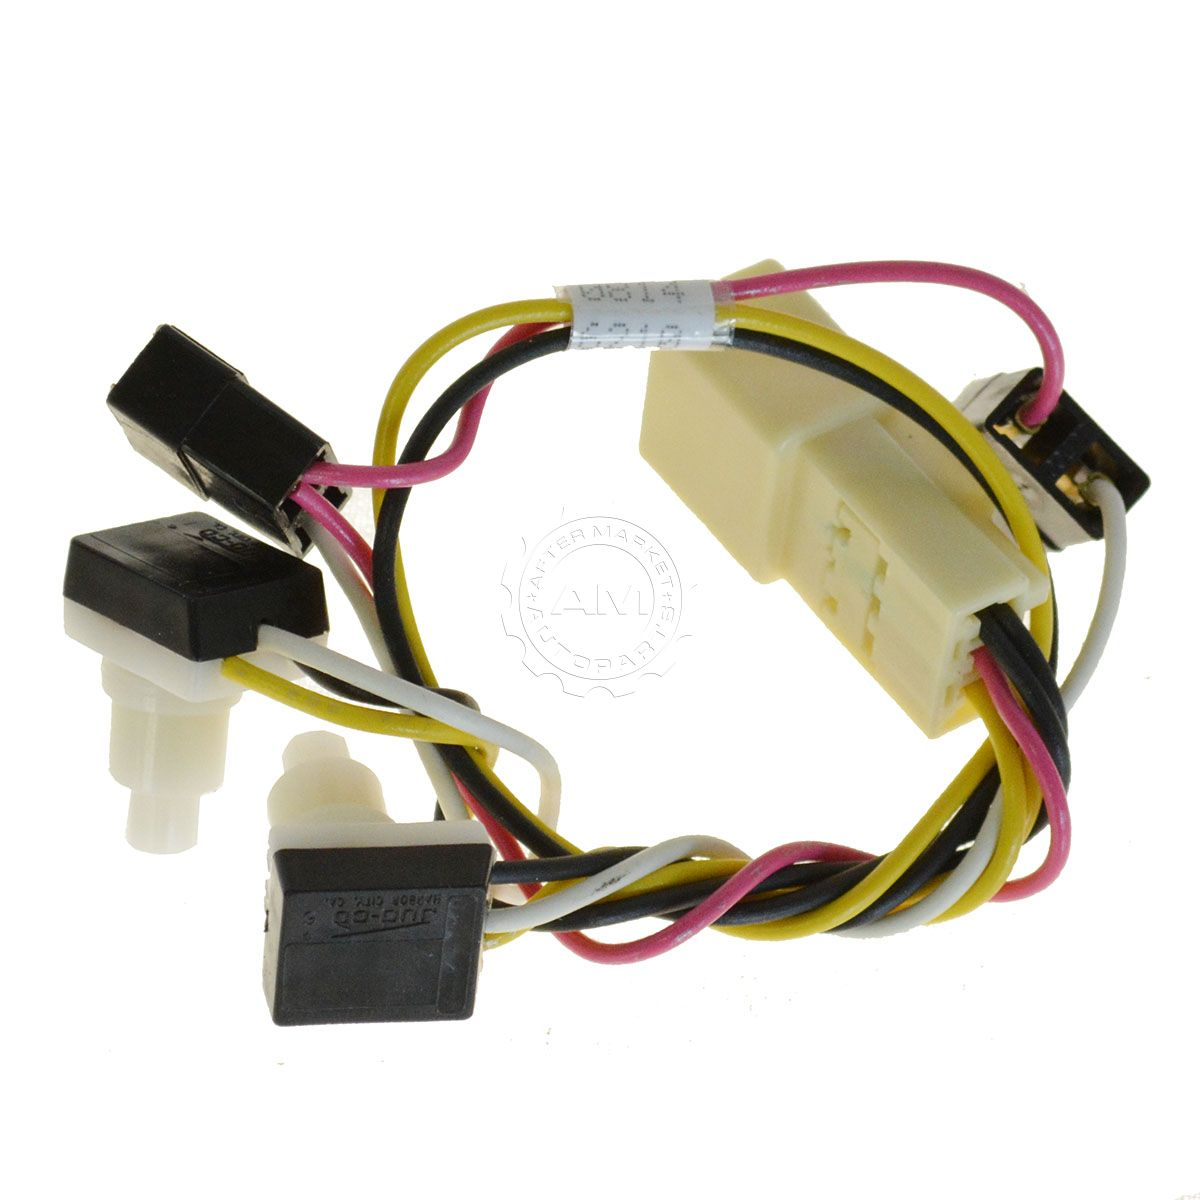 AM 1654819132 oem overhead console map light wiring harness & switches for dodge  at webbmarketing.co